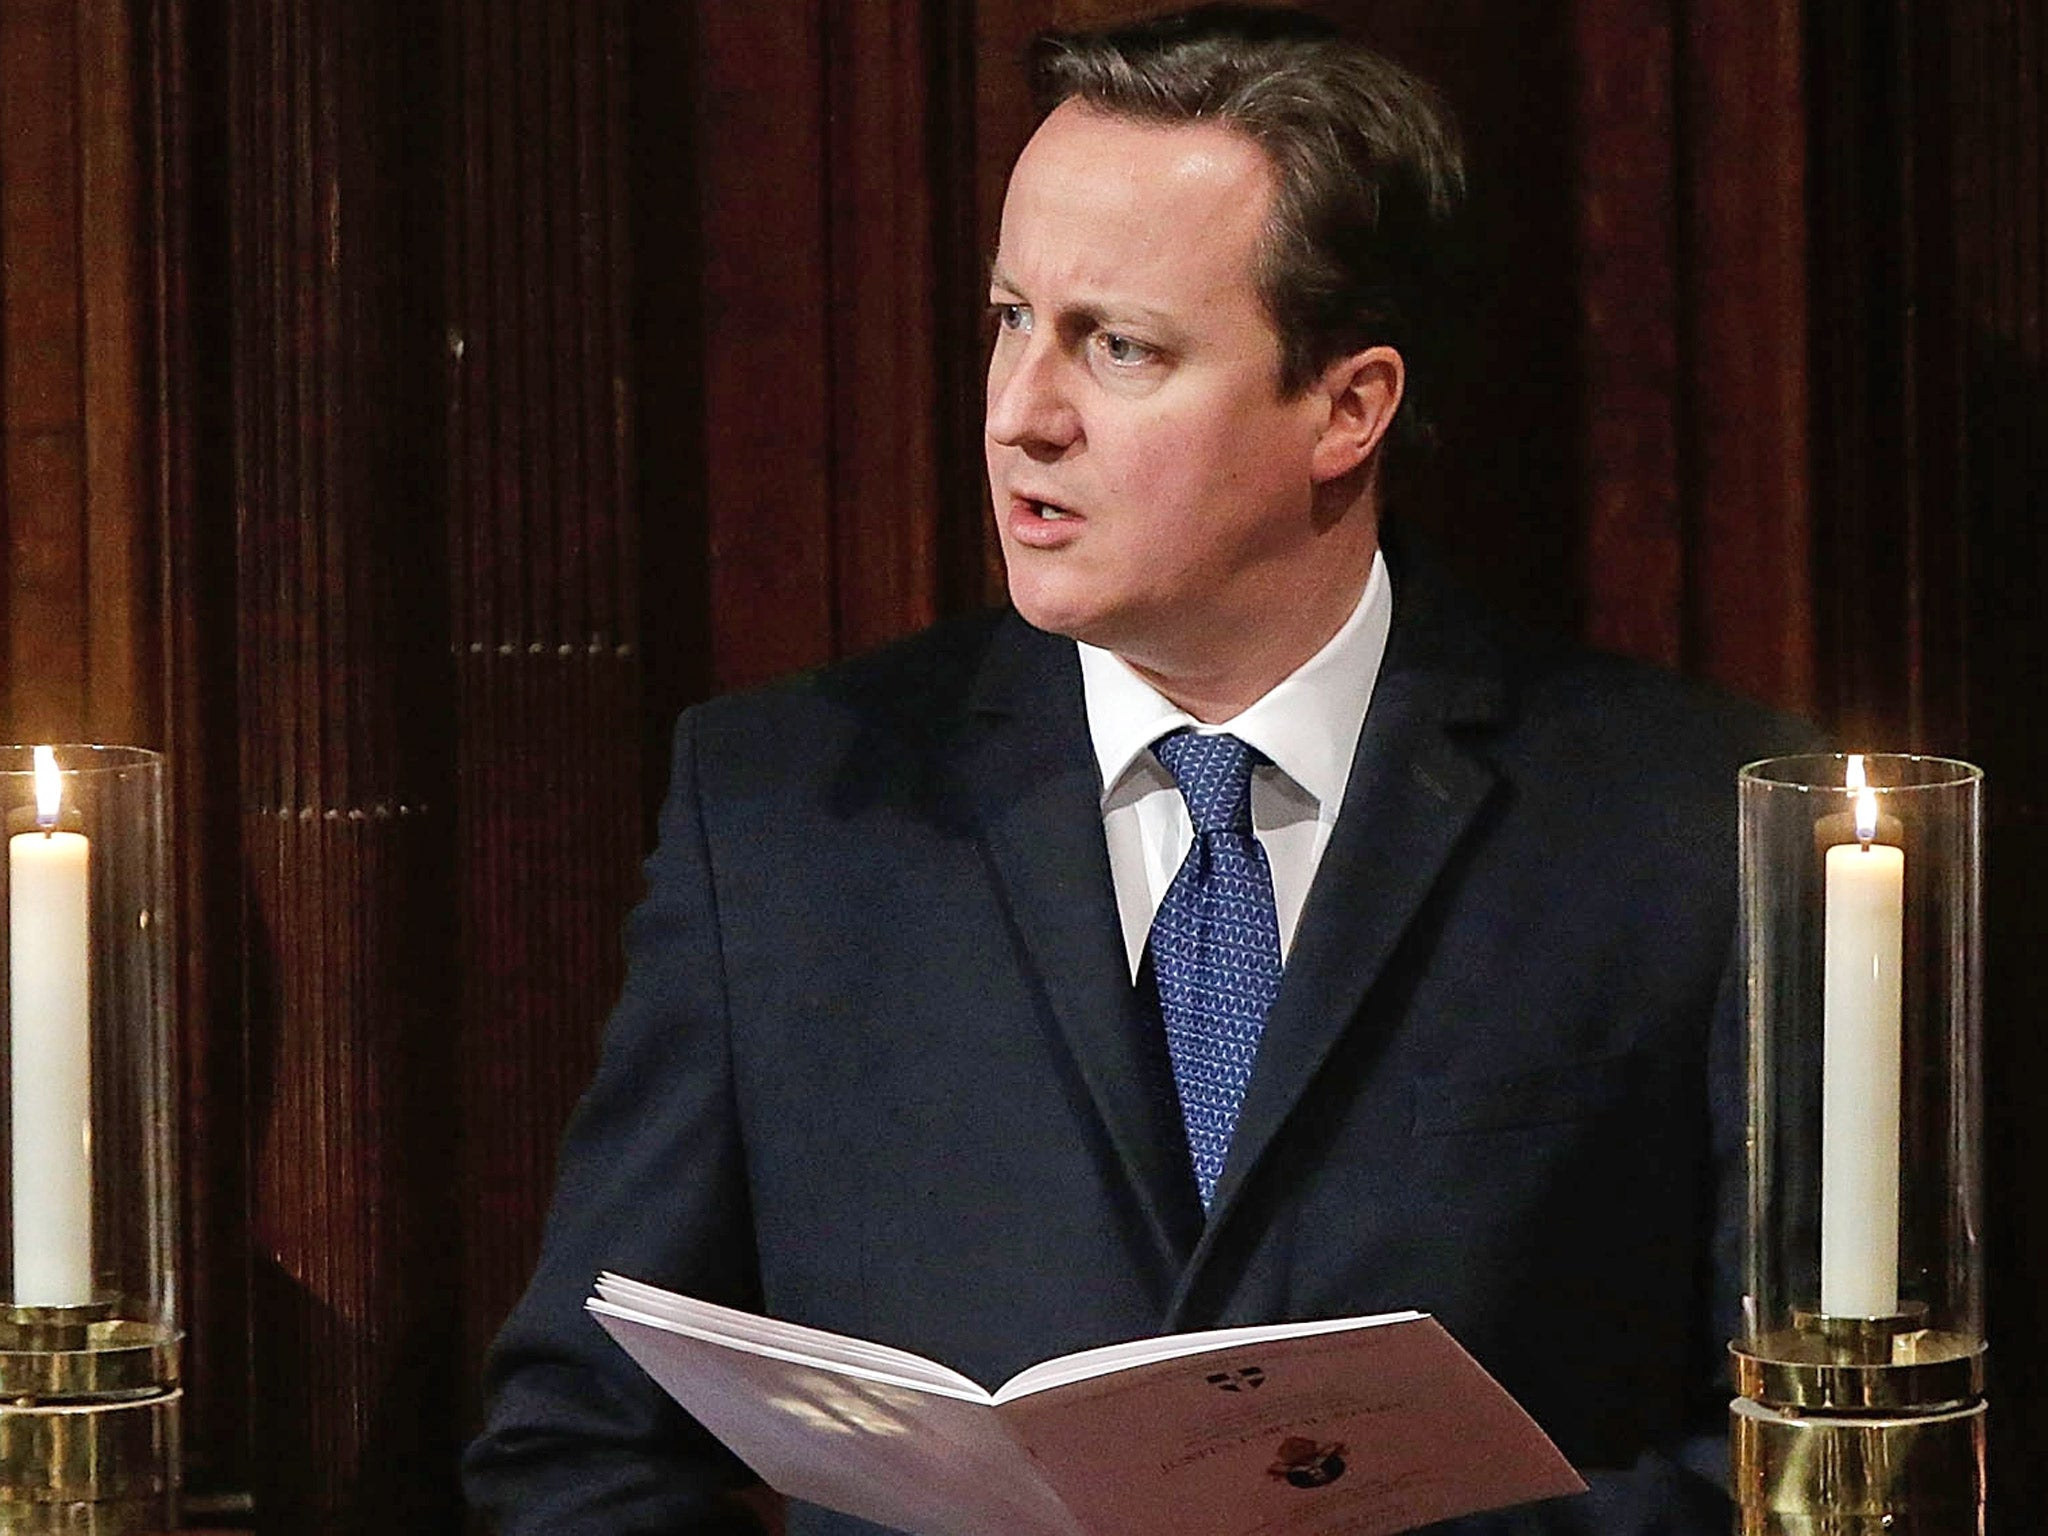 Let us praise: David Cameron acclaims his and Britain's Christian faith in secular age